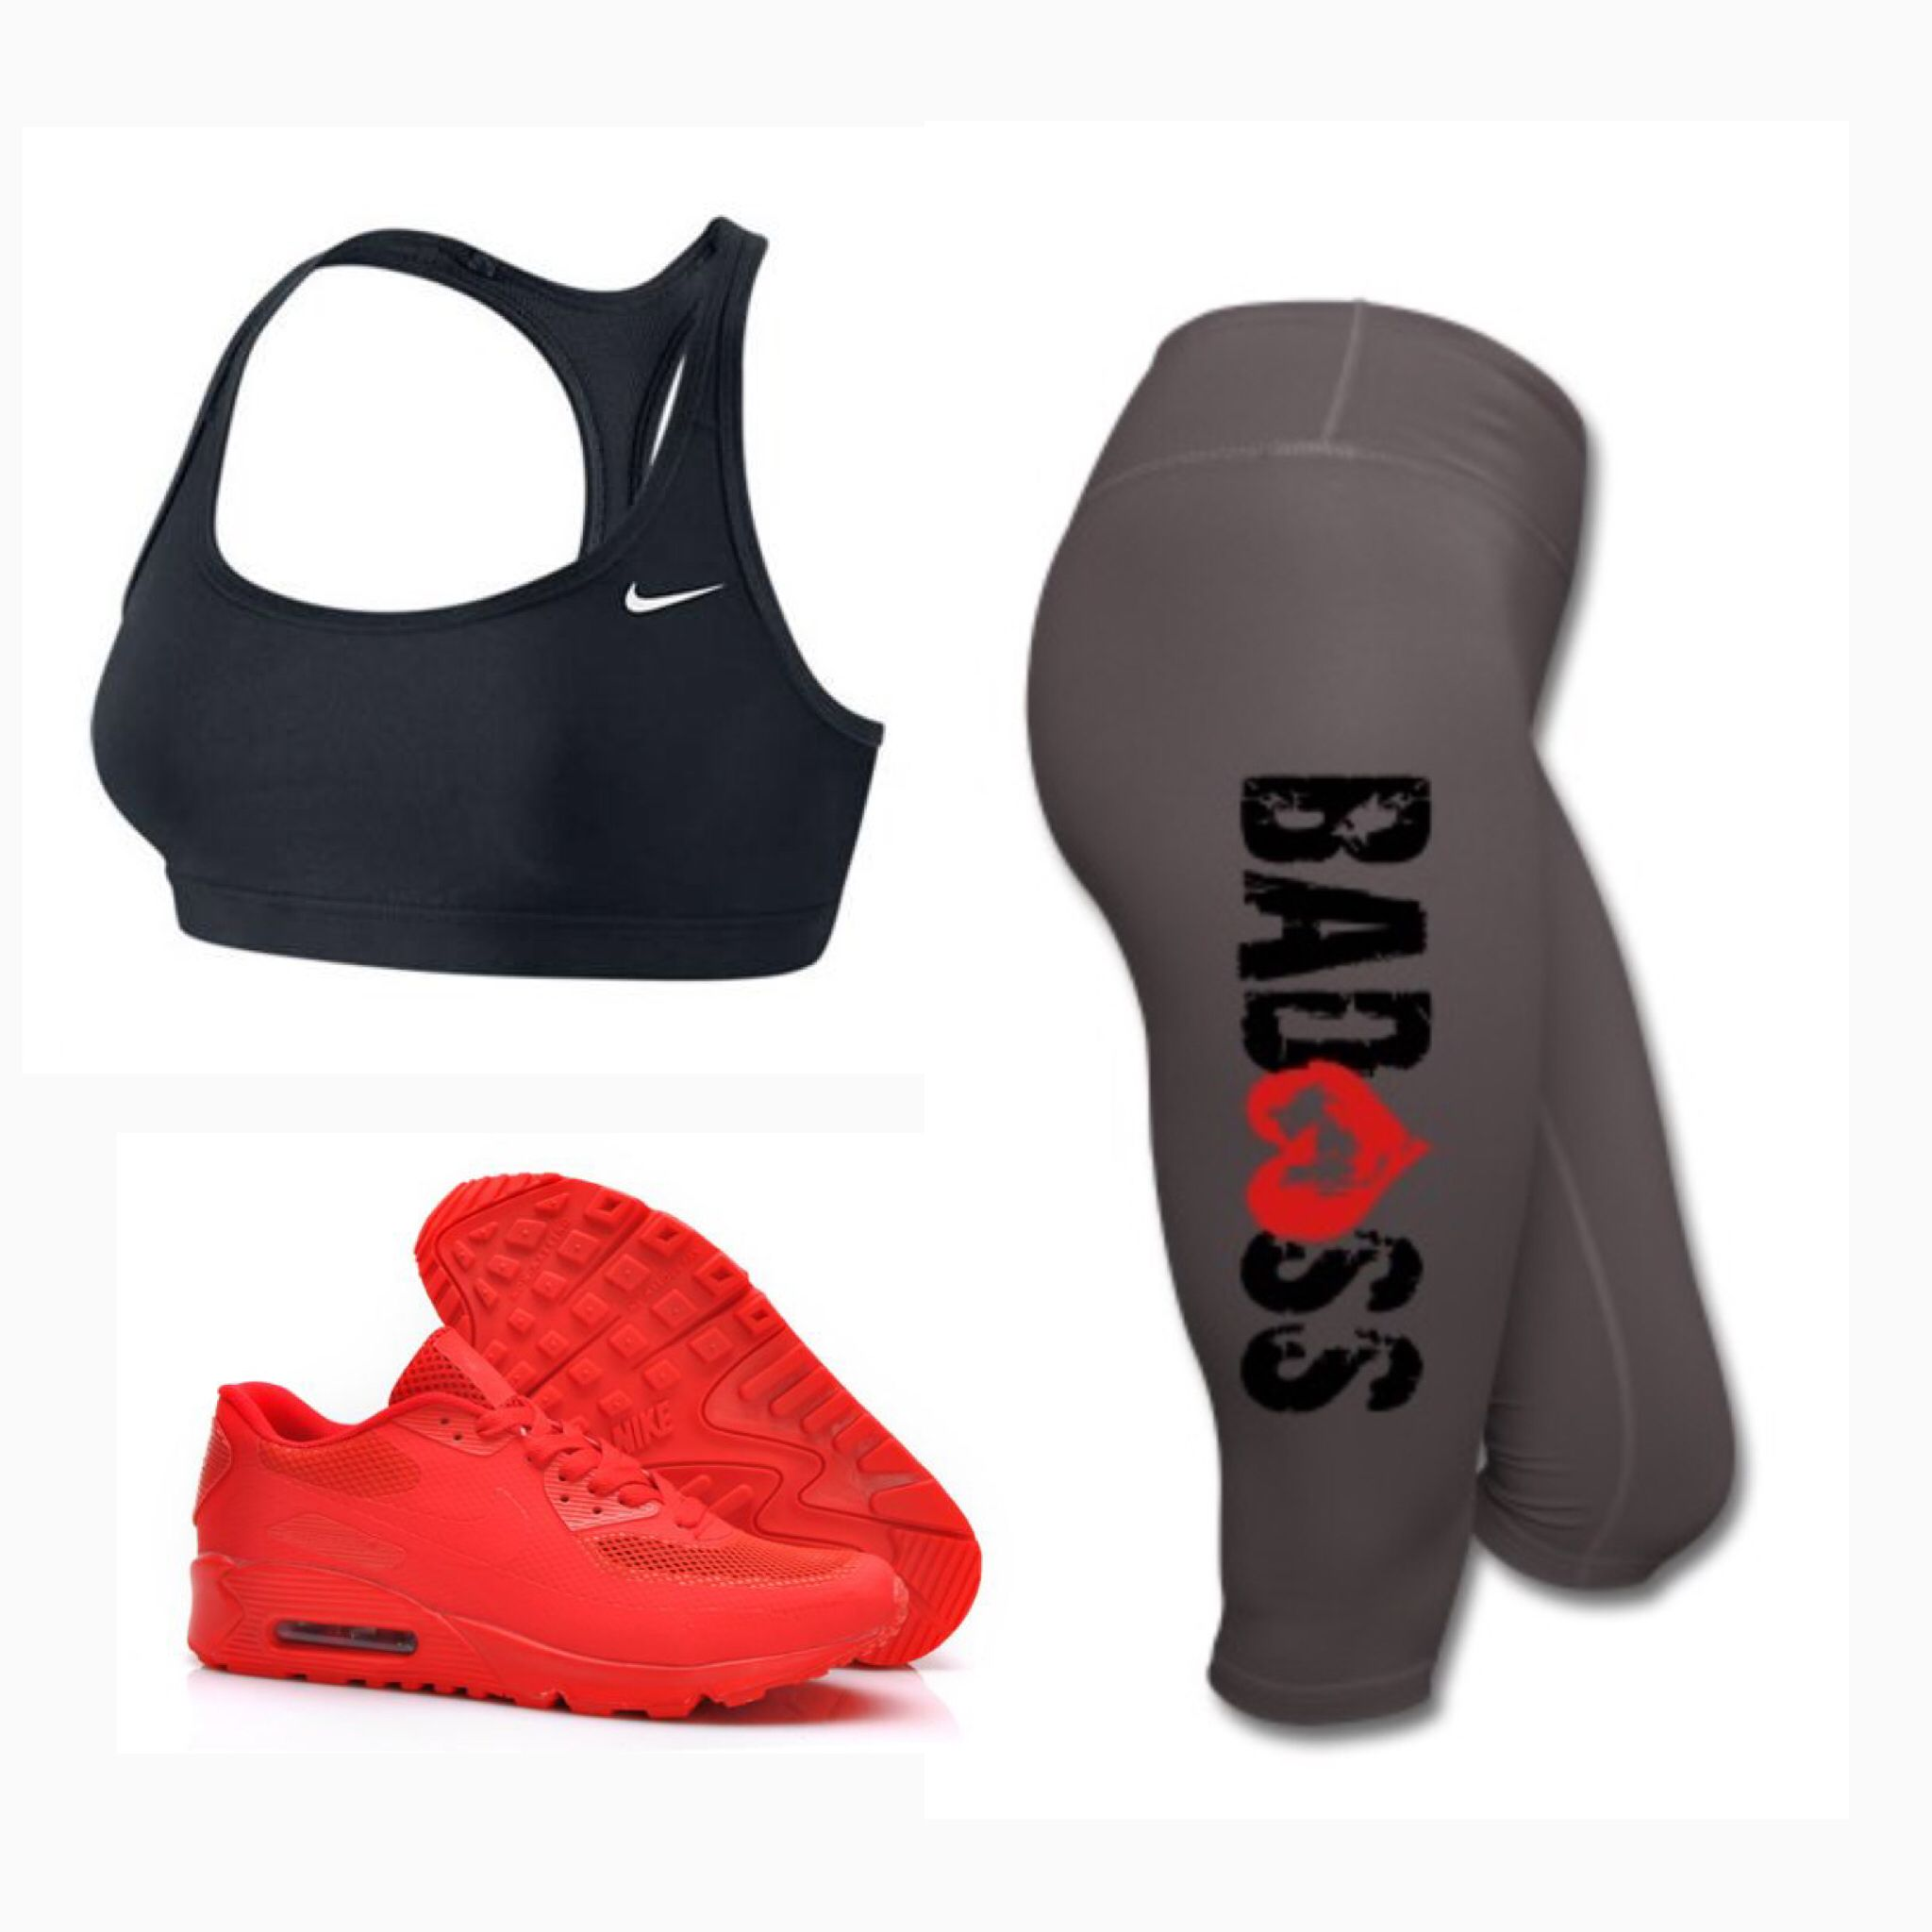 Women's Fitness Apparel, Fitness Apparel, Workout Clothing, Fitness Fashion, Workout Gear, and Fitness Clothing  #badass_bodies #fashion #fitness #badassbodiesgear #gym #badassbodiesangels #gymswag #gymfashion #fitnessapparel #badassbodies #fitnessgear #badassbodiesapparel #fitapparel #workoutgear #fit #workout #exercise #apparel